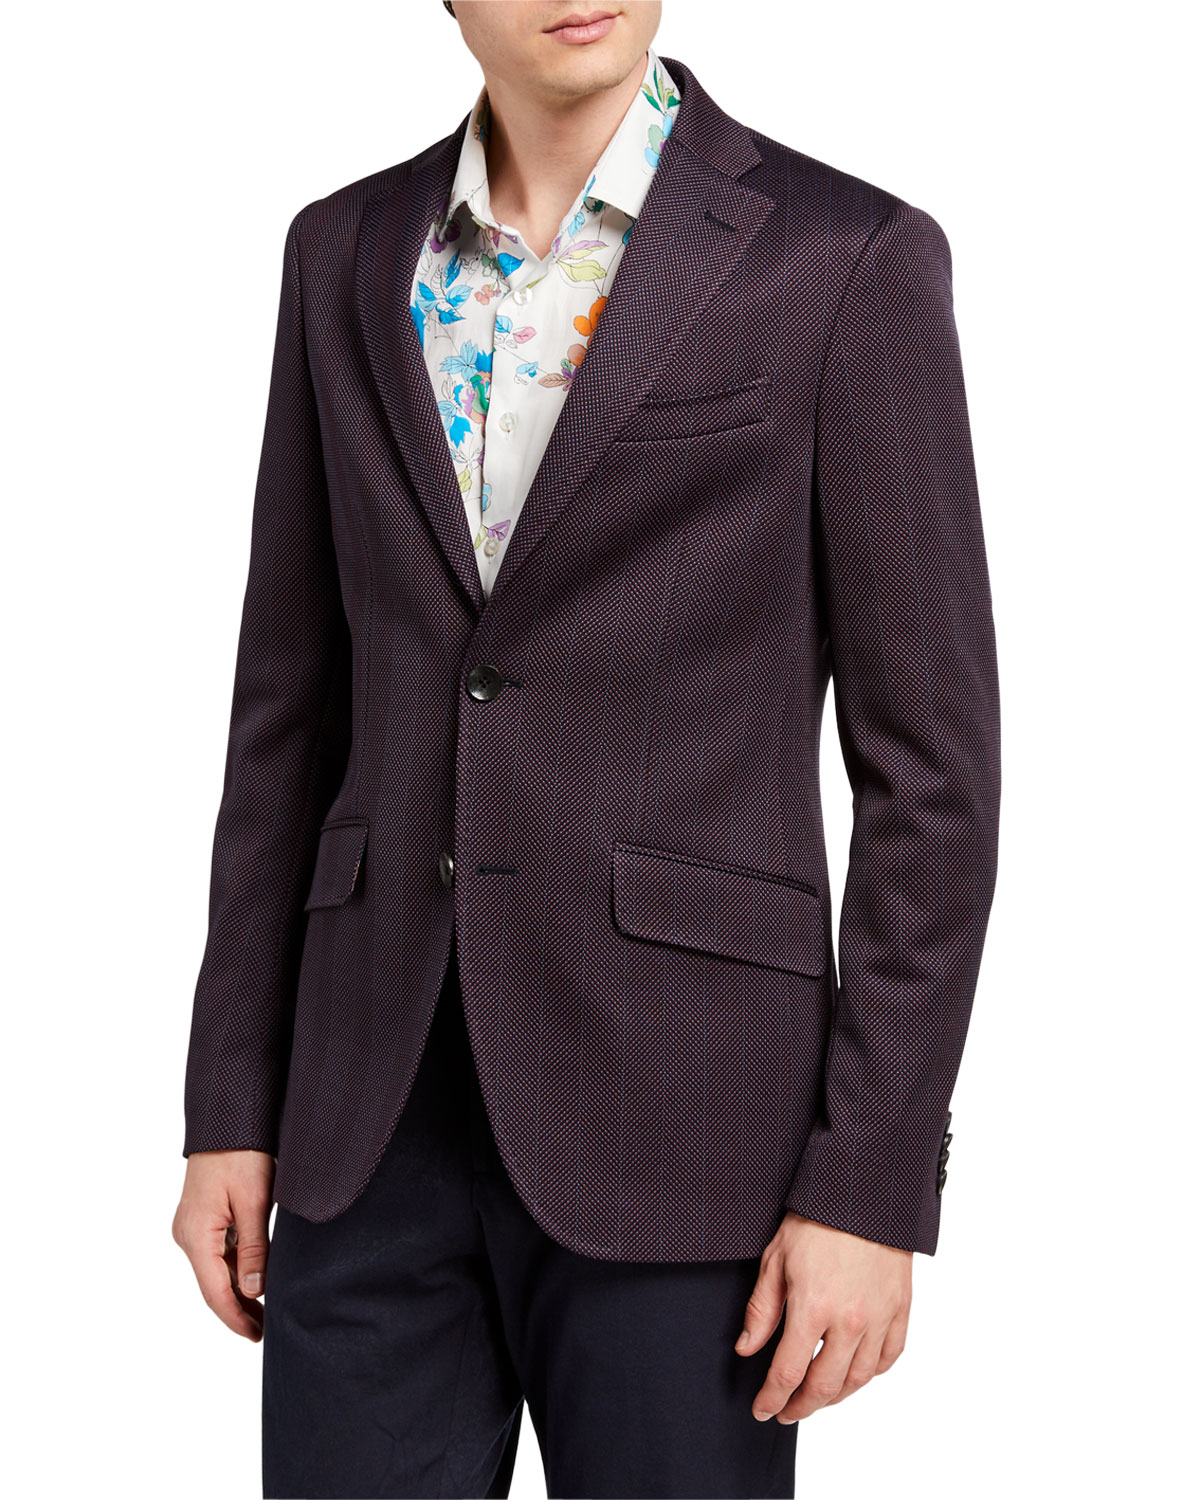 Etro Blazers MEN'S CHEVRON TWO-BUTTON KNIT BLAZER